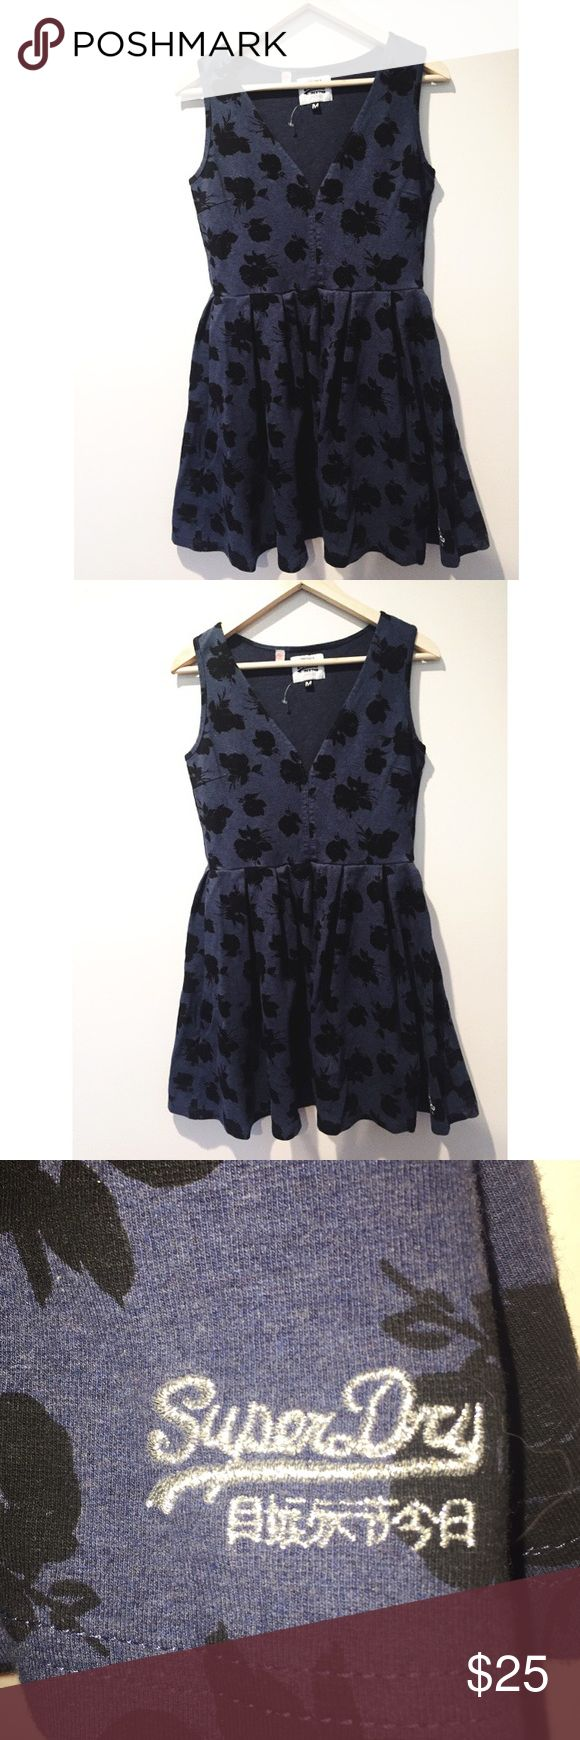 SUPERDRY NAVY V-NECK DRESS W. BLACK FLORAL PRINT Adorable Superdry Navy Sundress W. Black Floral Print! Navy color almost looks like denim but is super light and stretchy - a perfect transition dress from winter into spring and summer!  V-cut front is sexy and compliments the empire waist of the dress. Dress is a size M and can fit sizes 6-8. Pair this with a pair of block and you'll be ready to rock the world! Feel free to reach out if you have any questions 💕☺️ Superdry Dresses